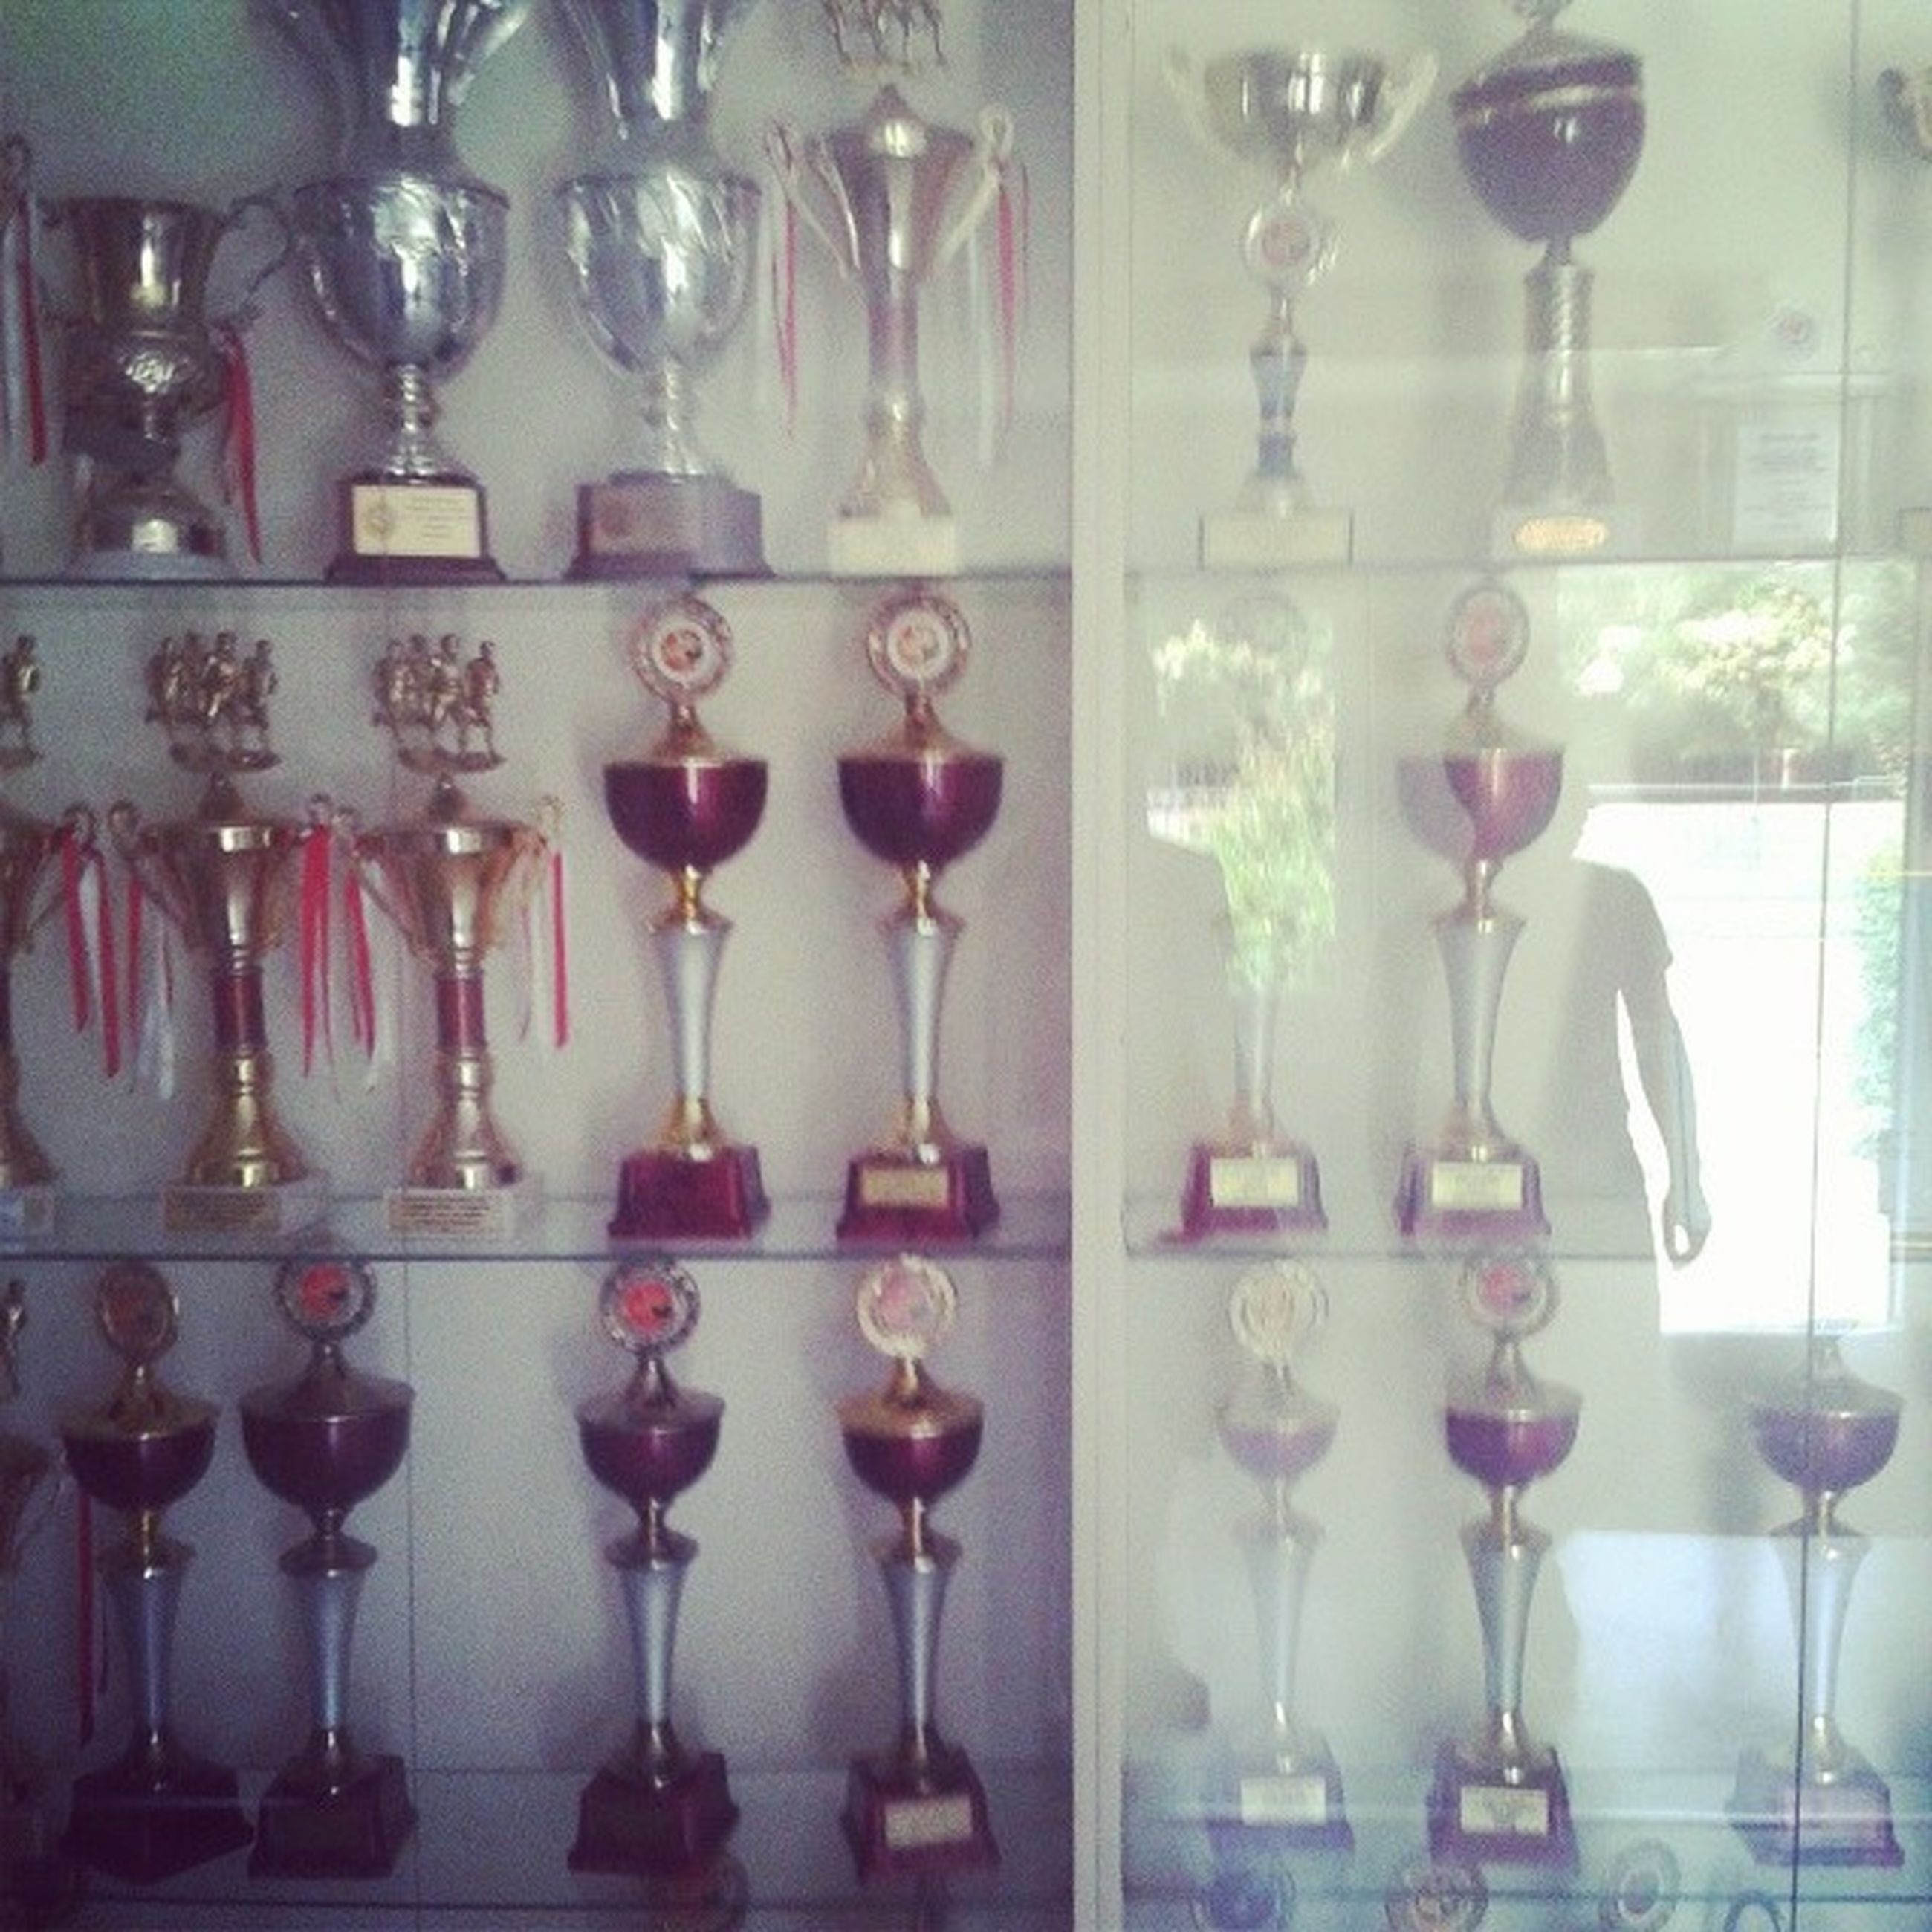 indoors, still life, glass - material, vase, table, hanging, home interior, arrangement, bottle, transparent, variation, decoration, shelf, close-up, wineglass, large group of objects, no people, wall - building feature, flower, decor